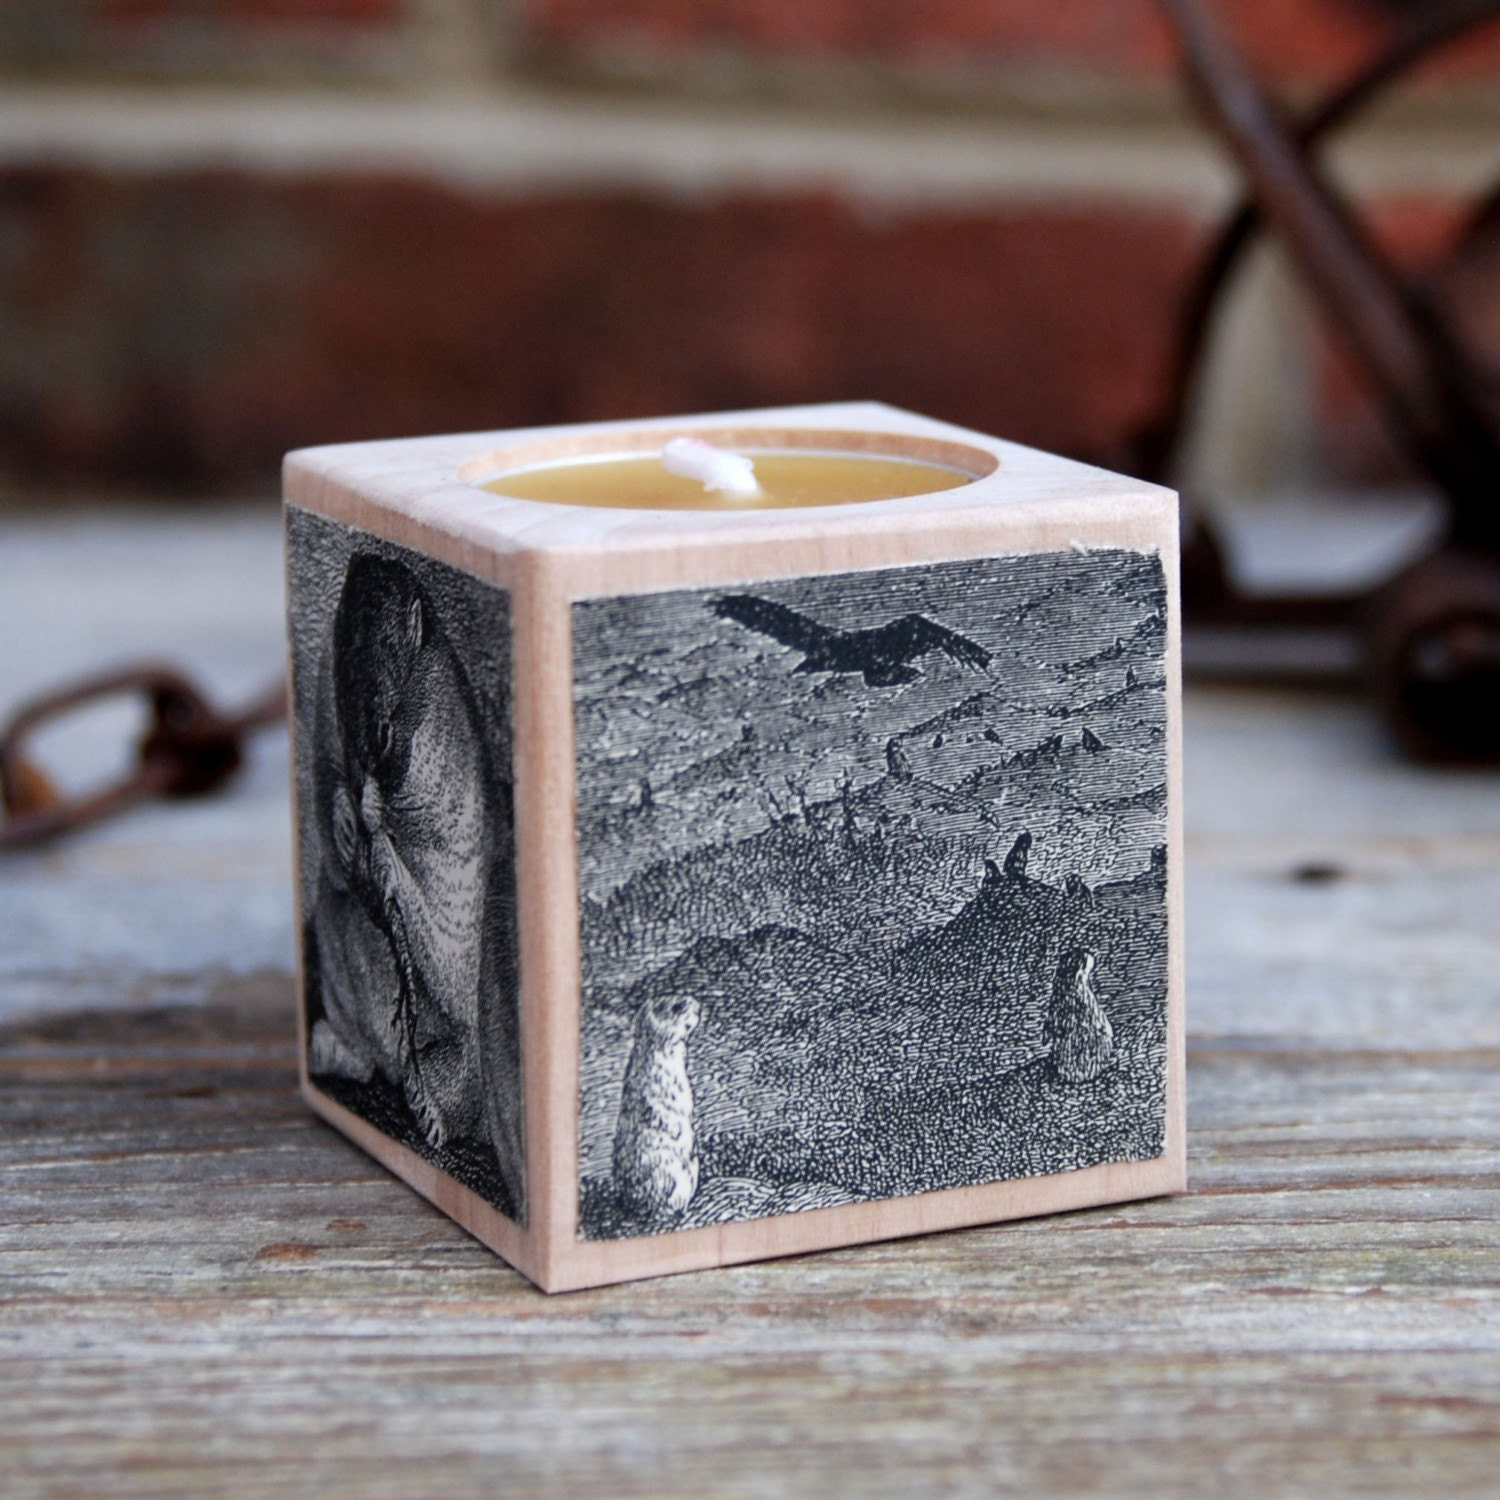 Snuggly grass rolling Bobac - Small Birch Candle Block with Victorian Etchings